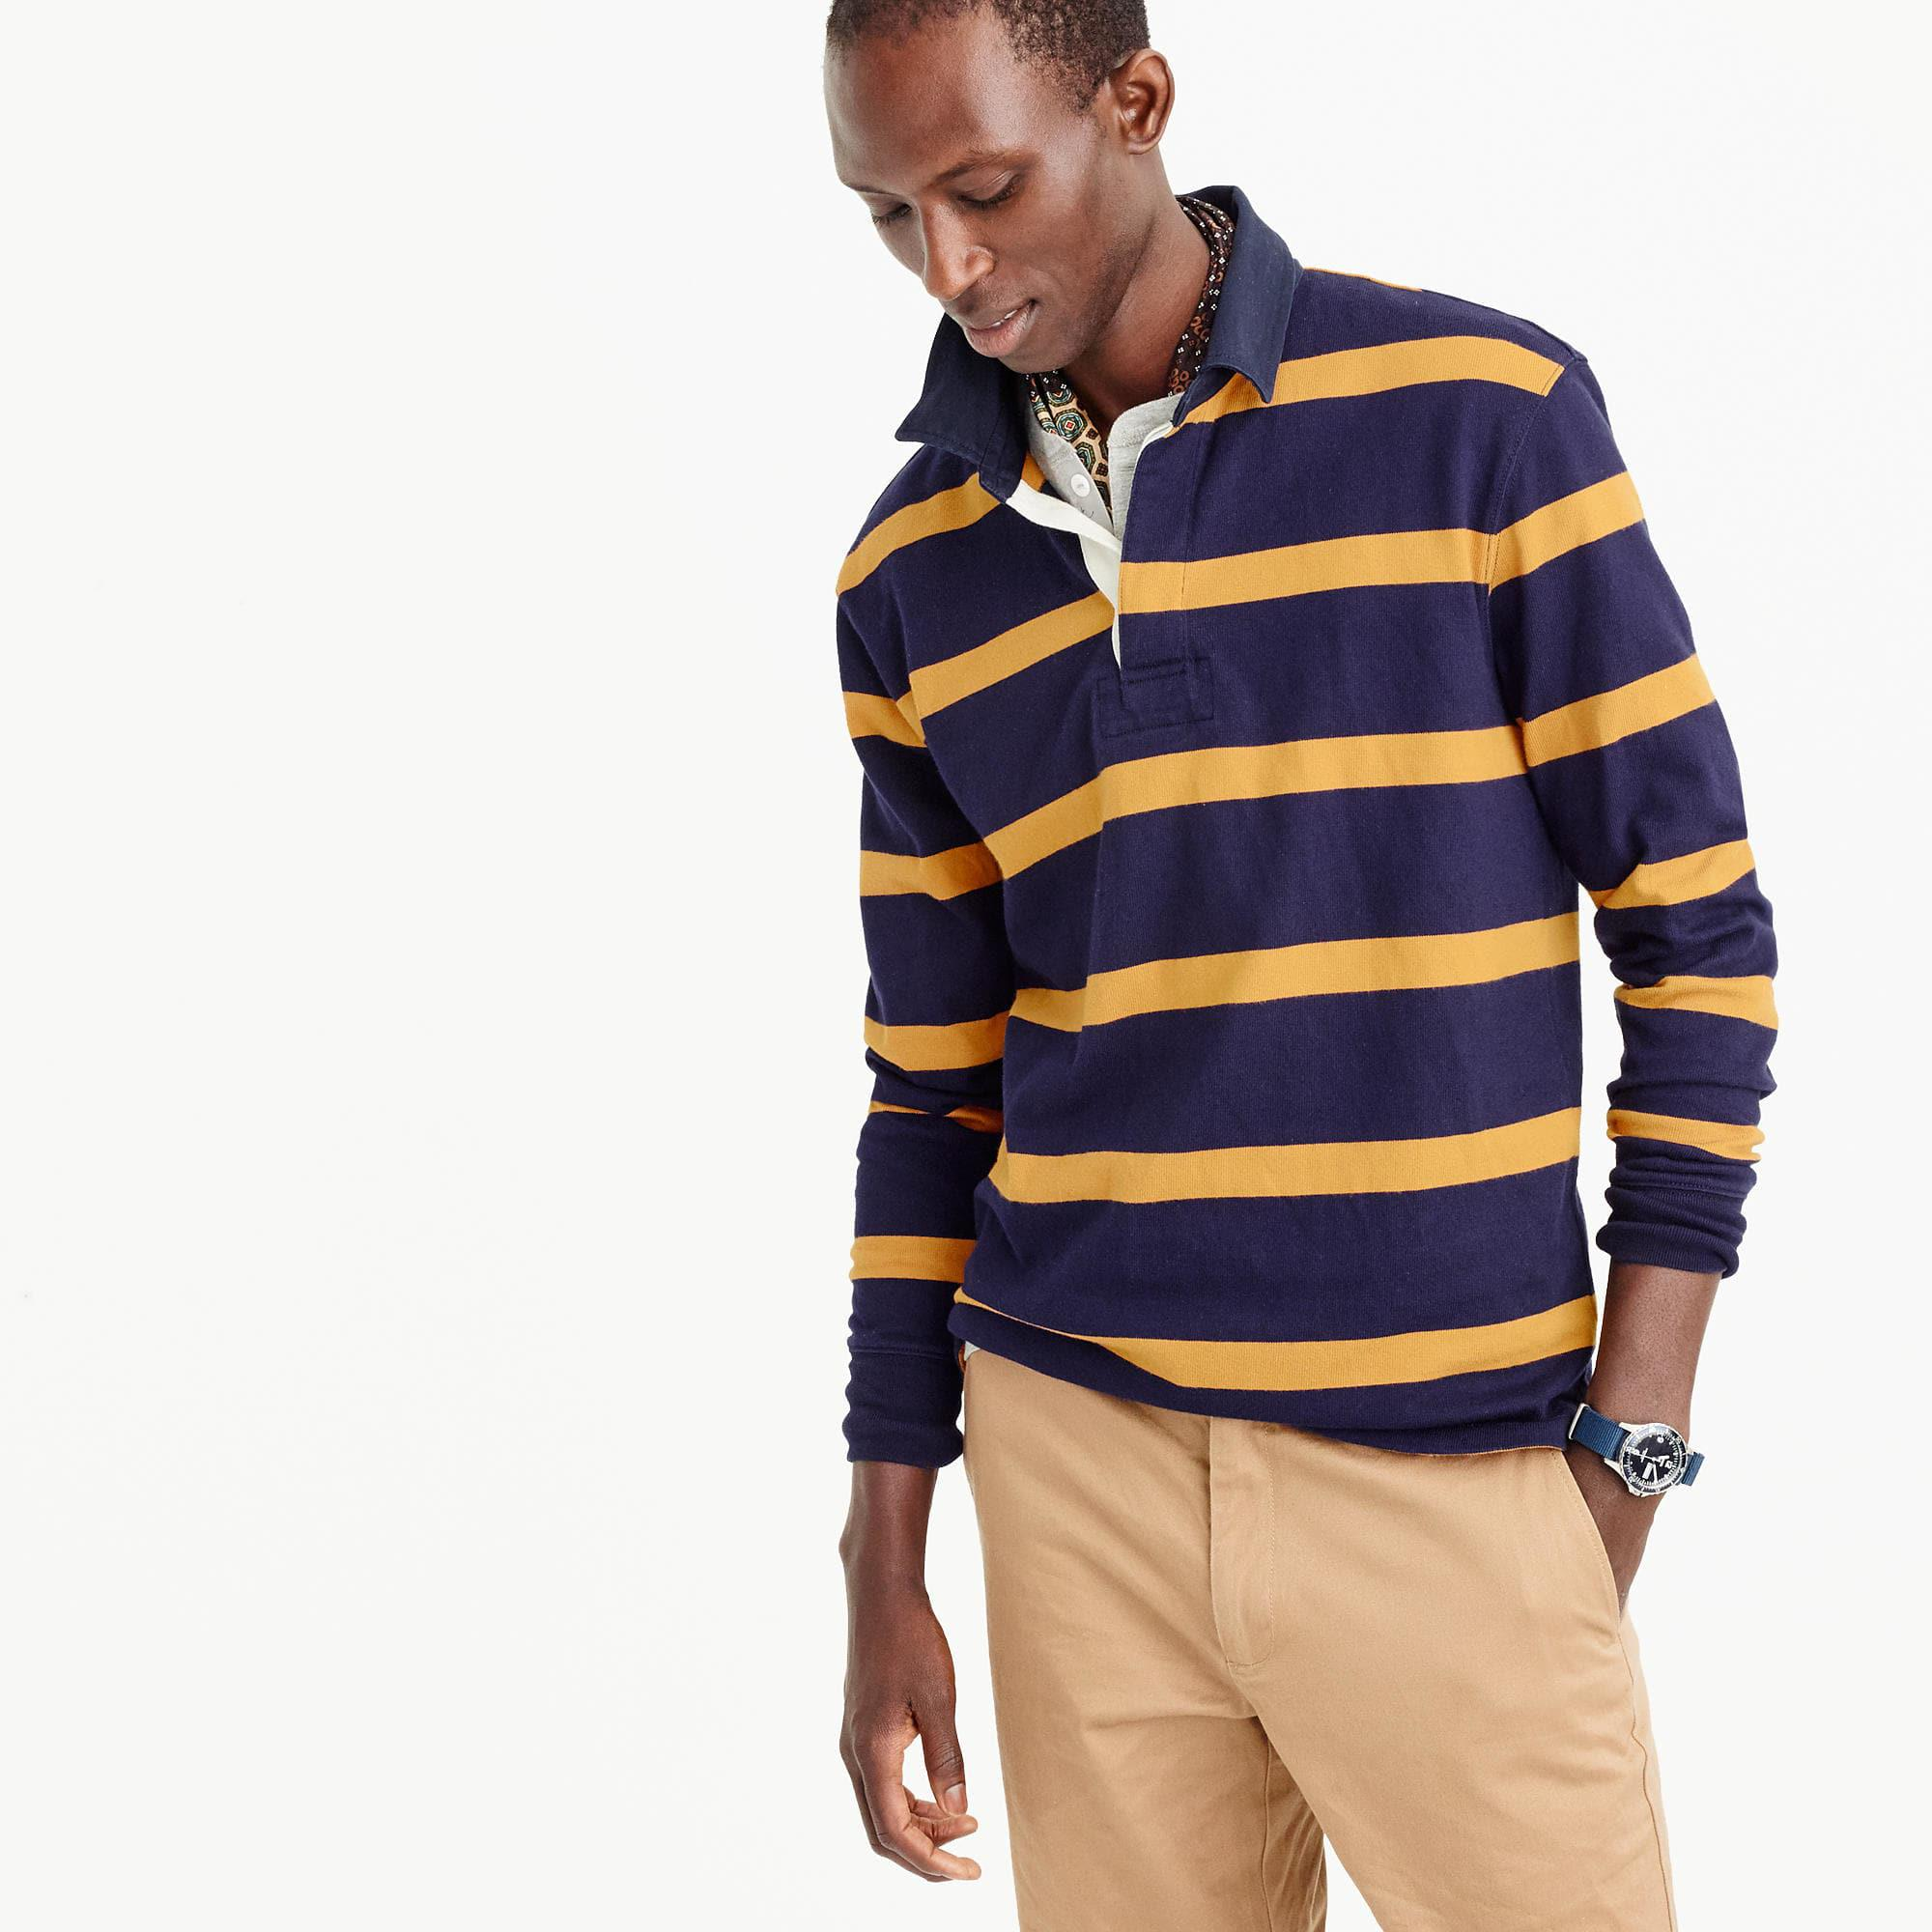 5354d63d9a6 J.Crew Rugby Shirt In Thin Stripe in Blue for Men - Save 67%